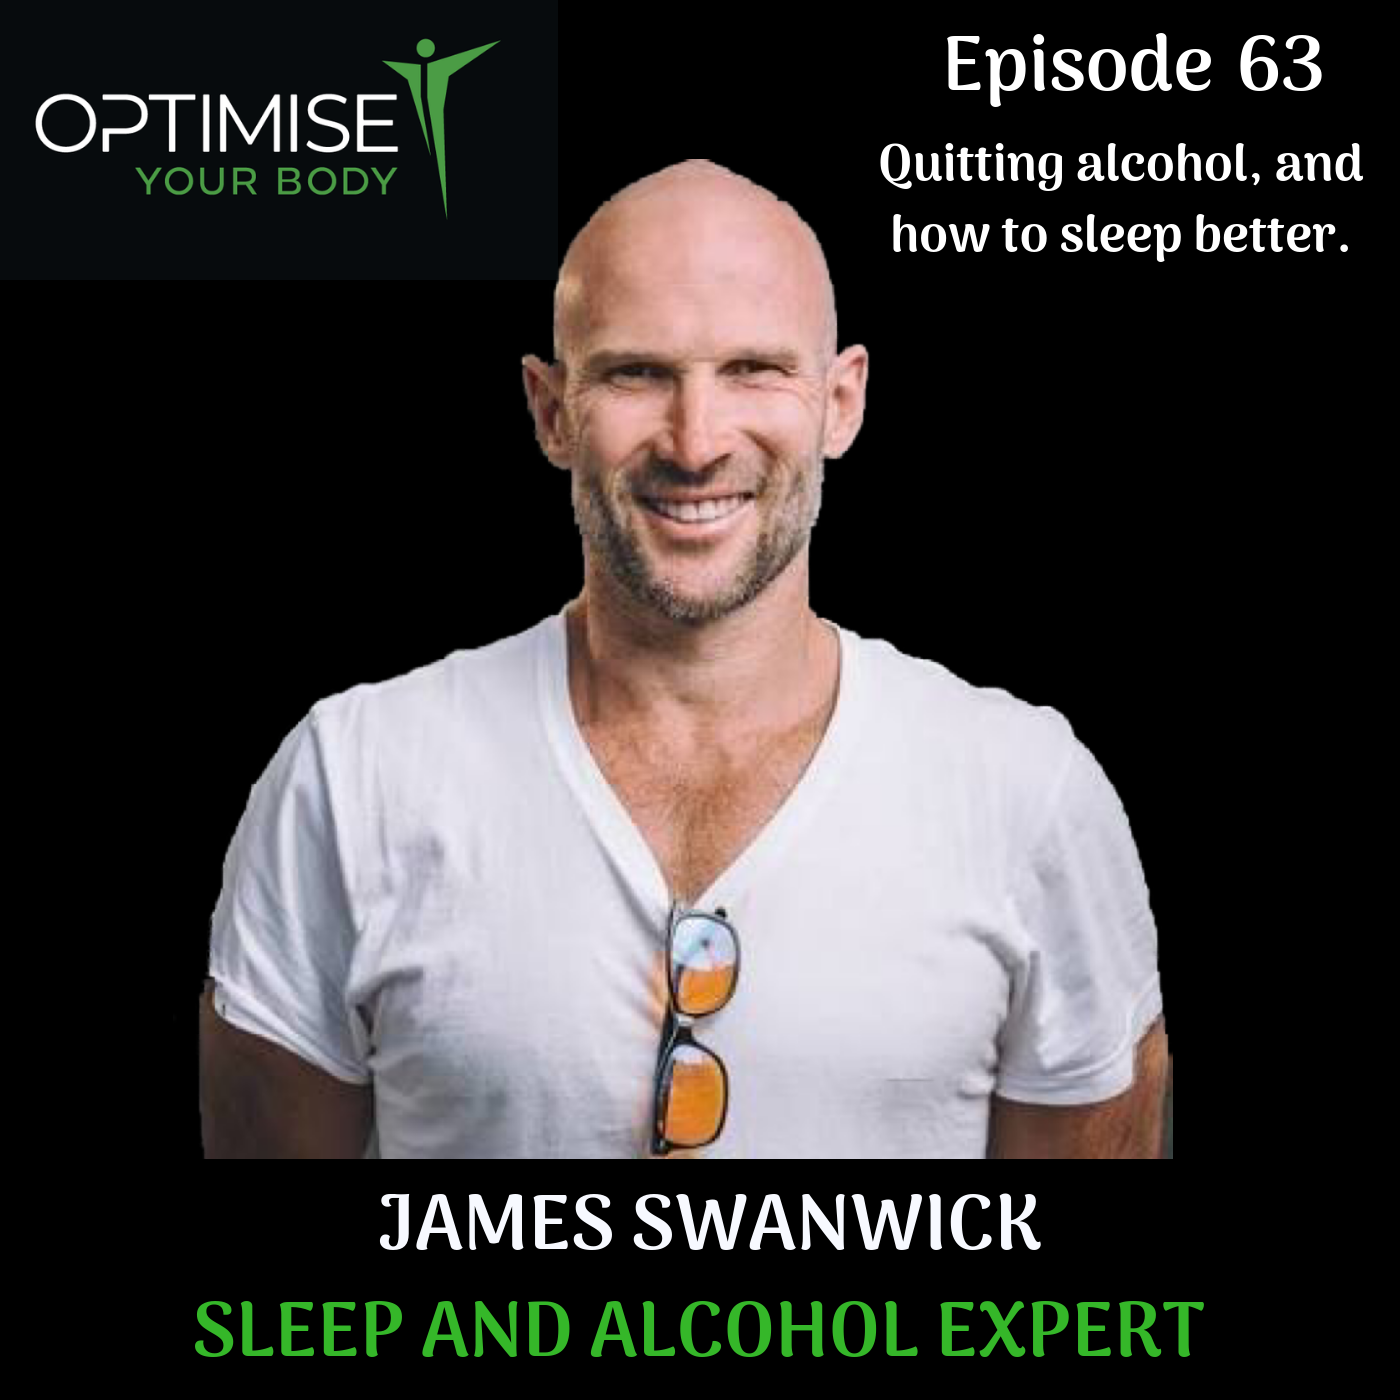 Quitting alcohol, and how to sleep better with James Swanwick.